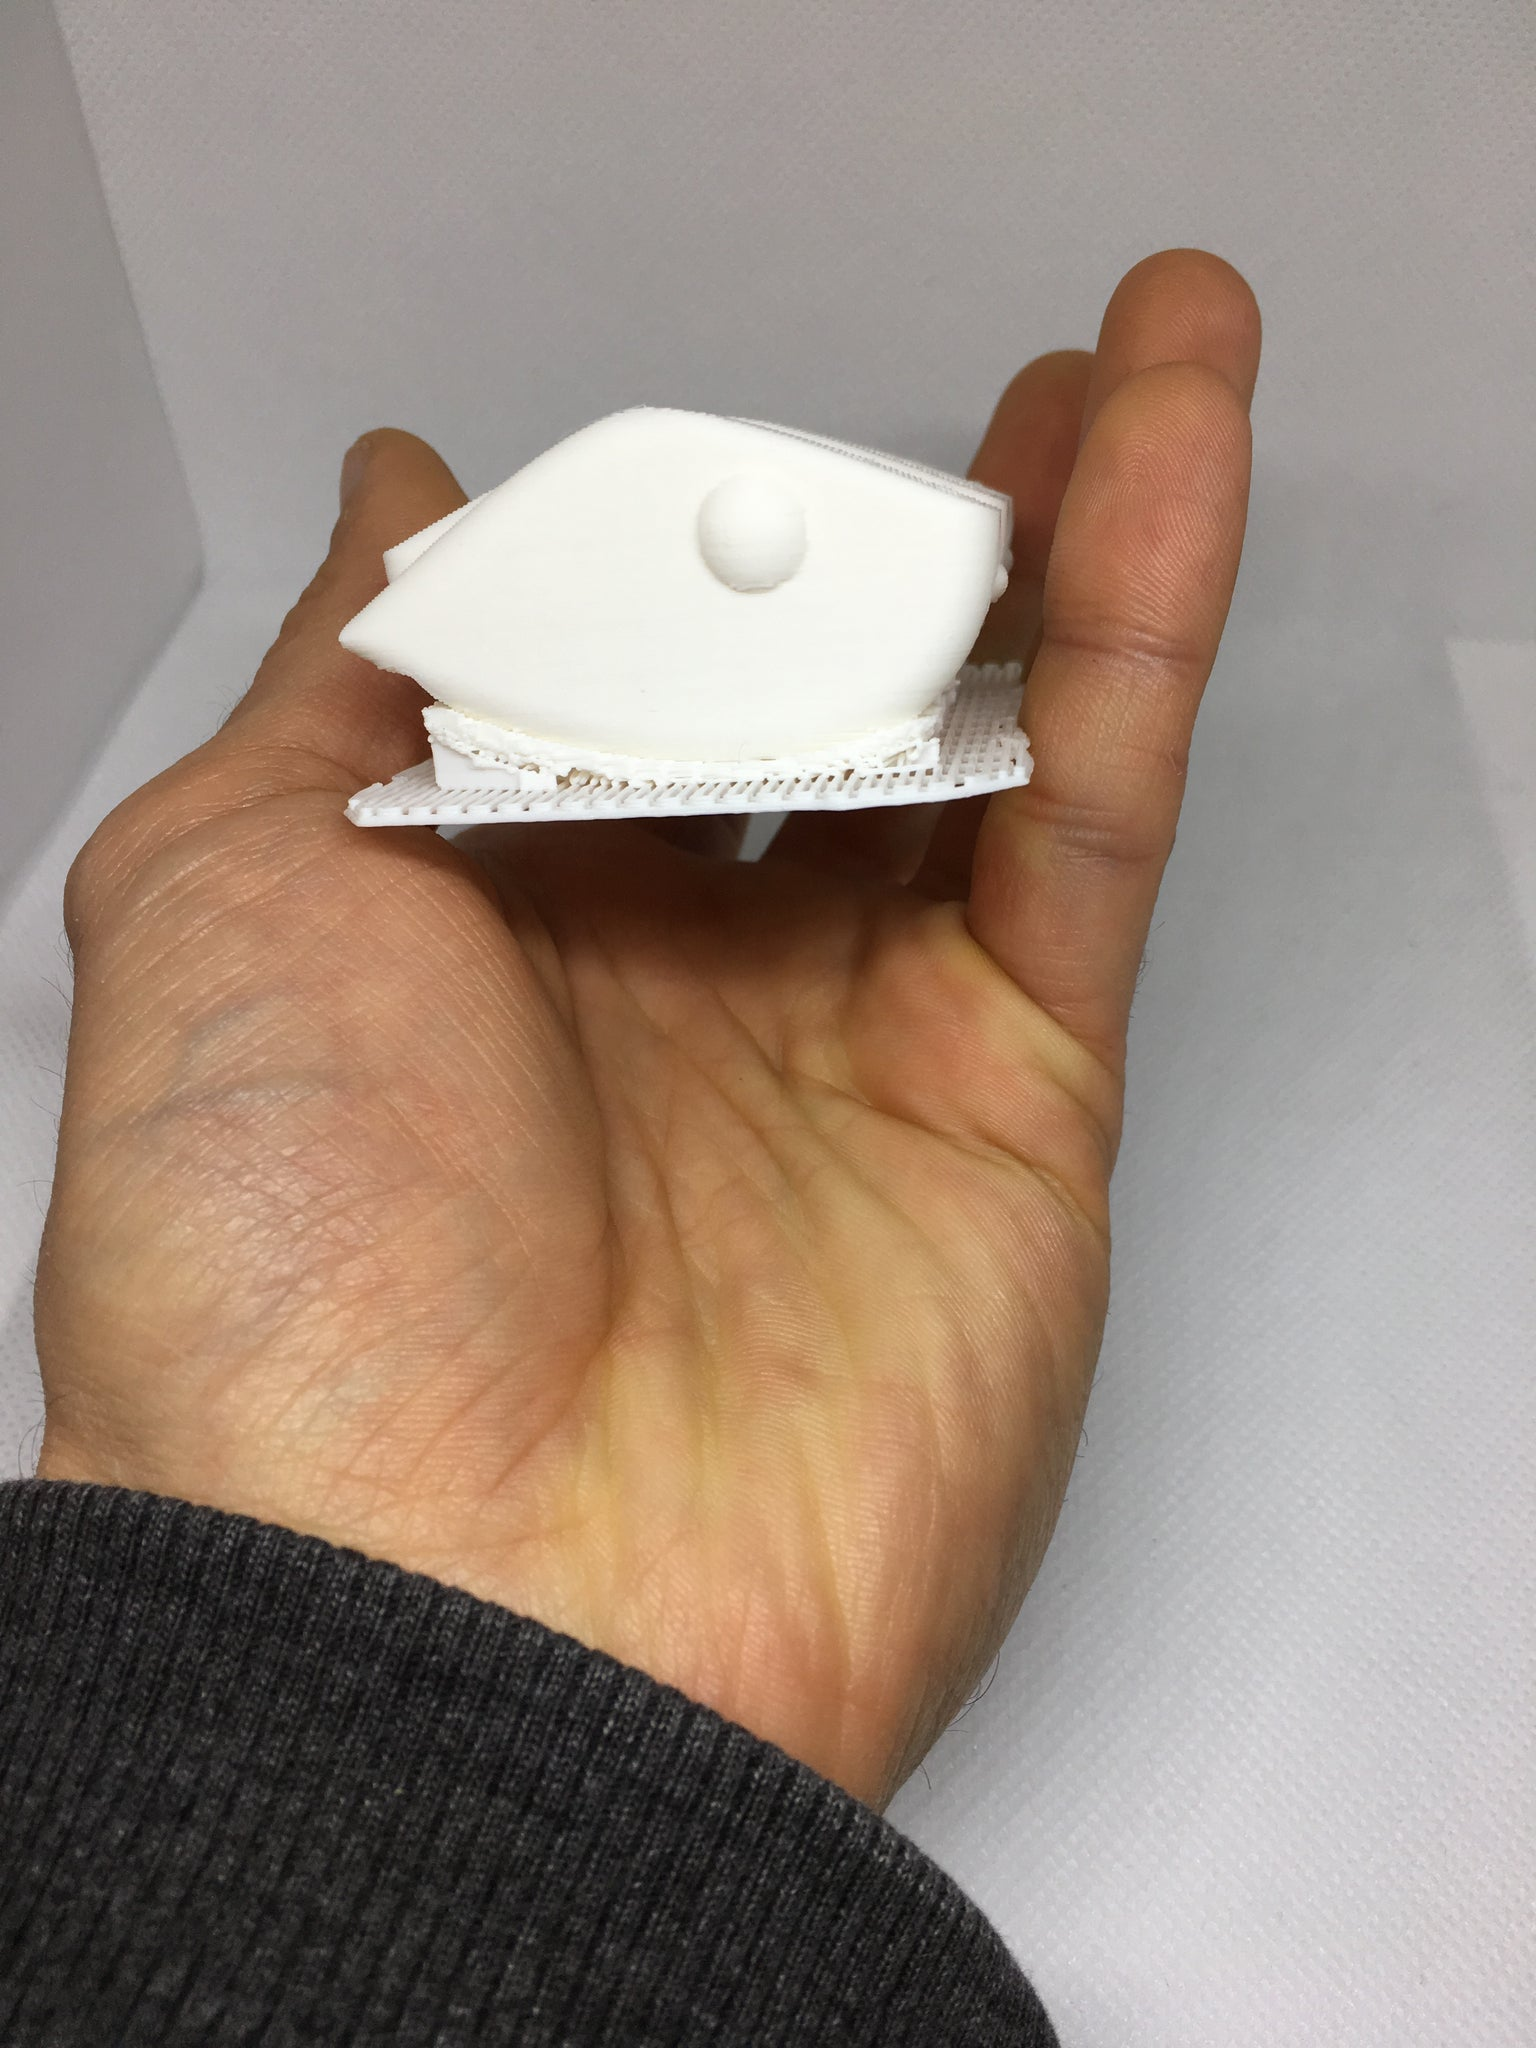 LIPLESS CRANKBAIT 2 INCH BLANK 3D PRINTED FRESH OFF THE PRINTER (WHITE)